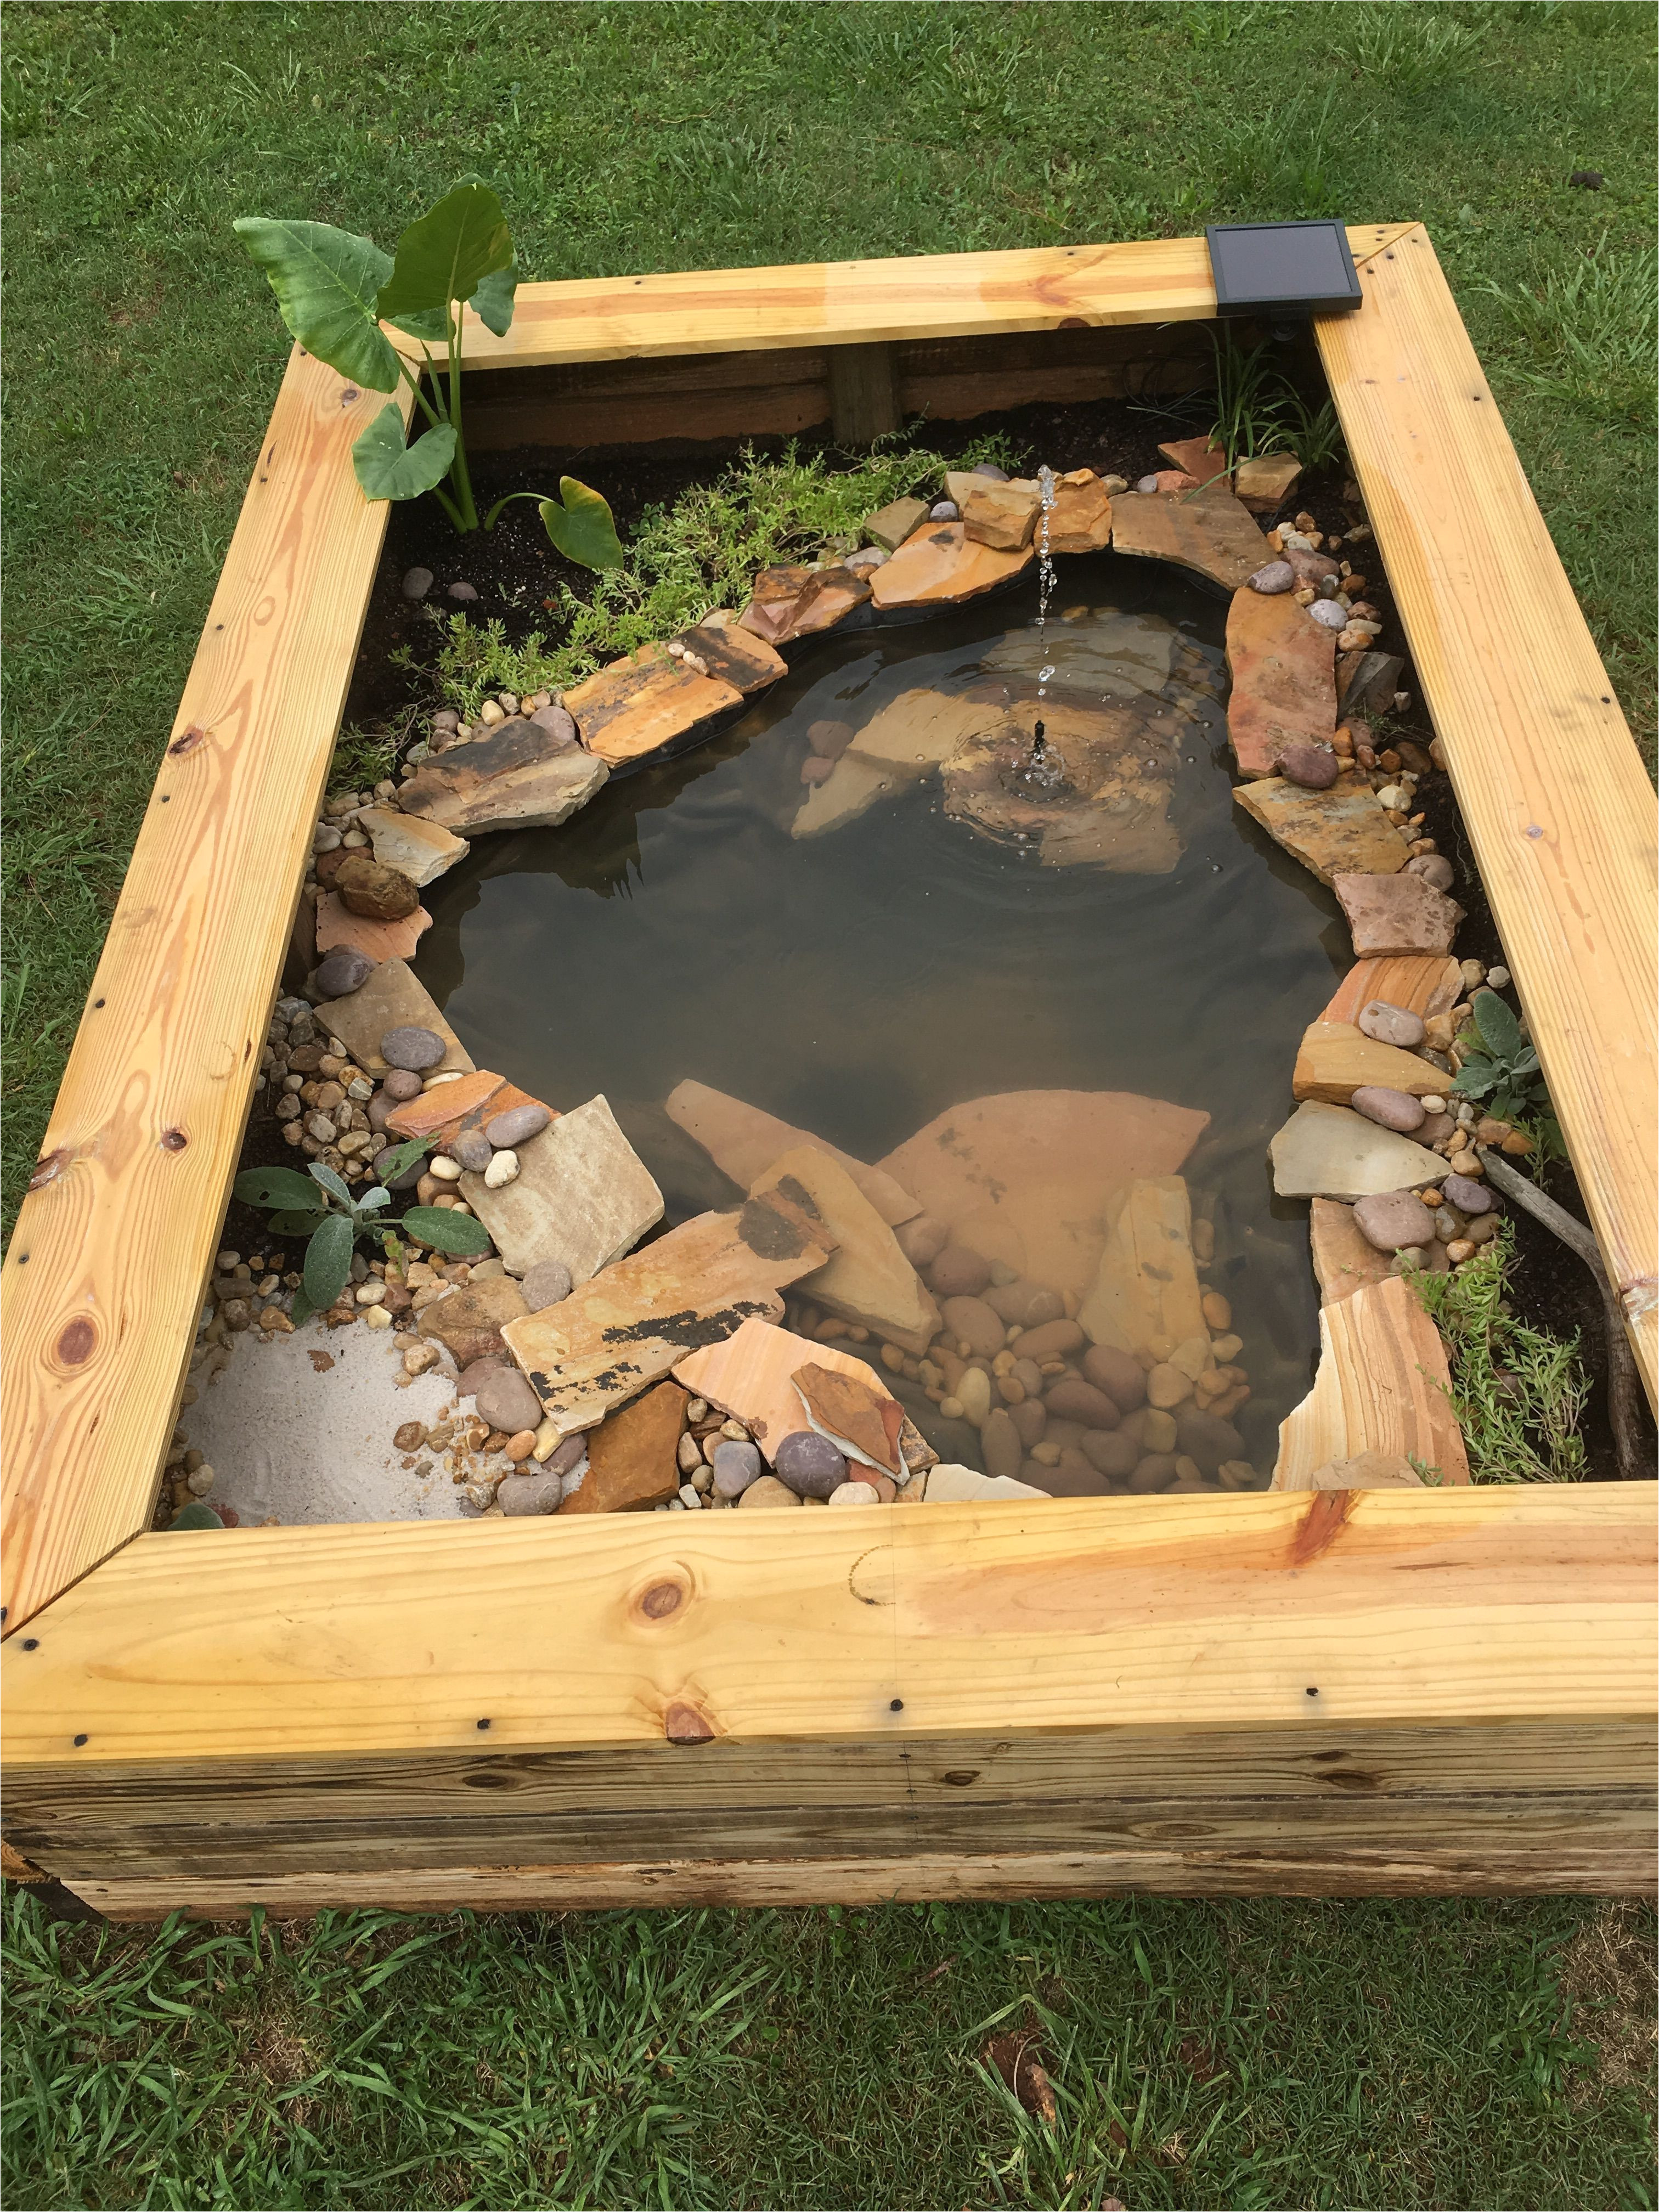 Above Ground Turtle Pond Our New Diy Above Ground Pond for Bella the Turtle Ponds